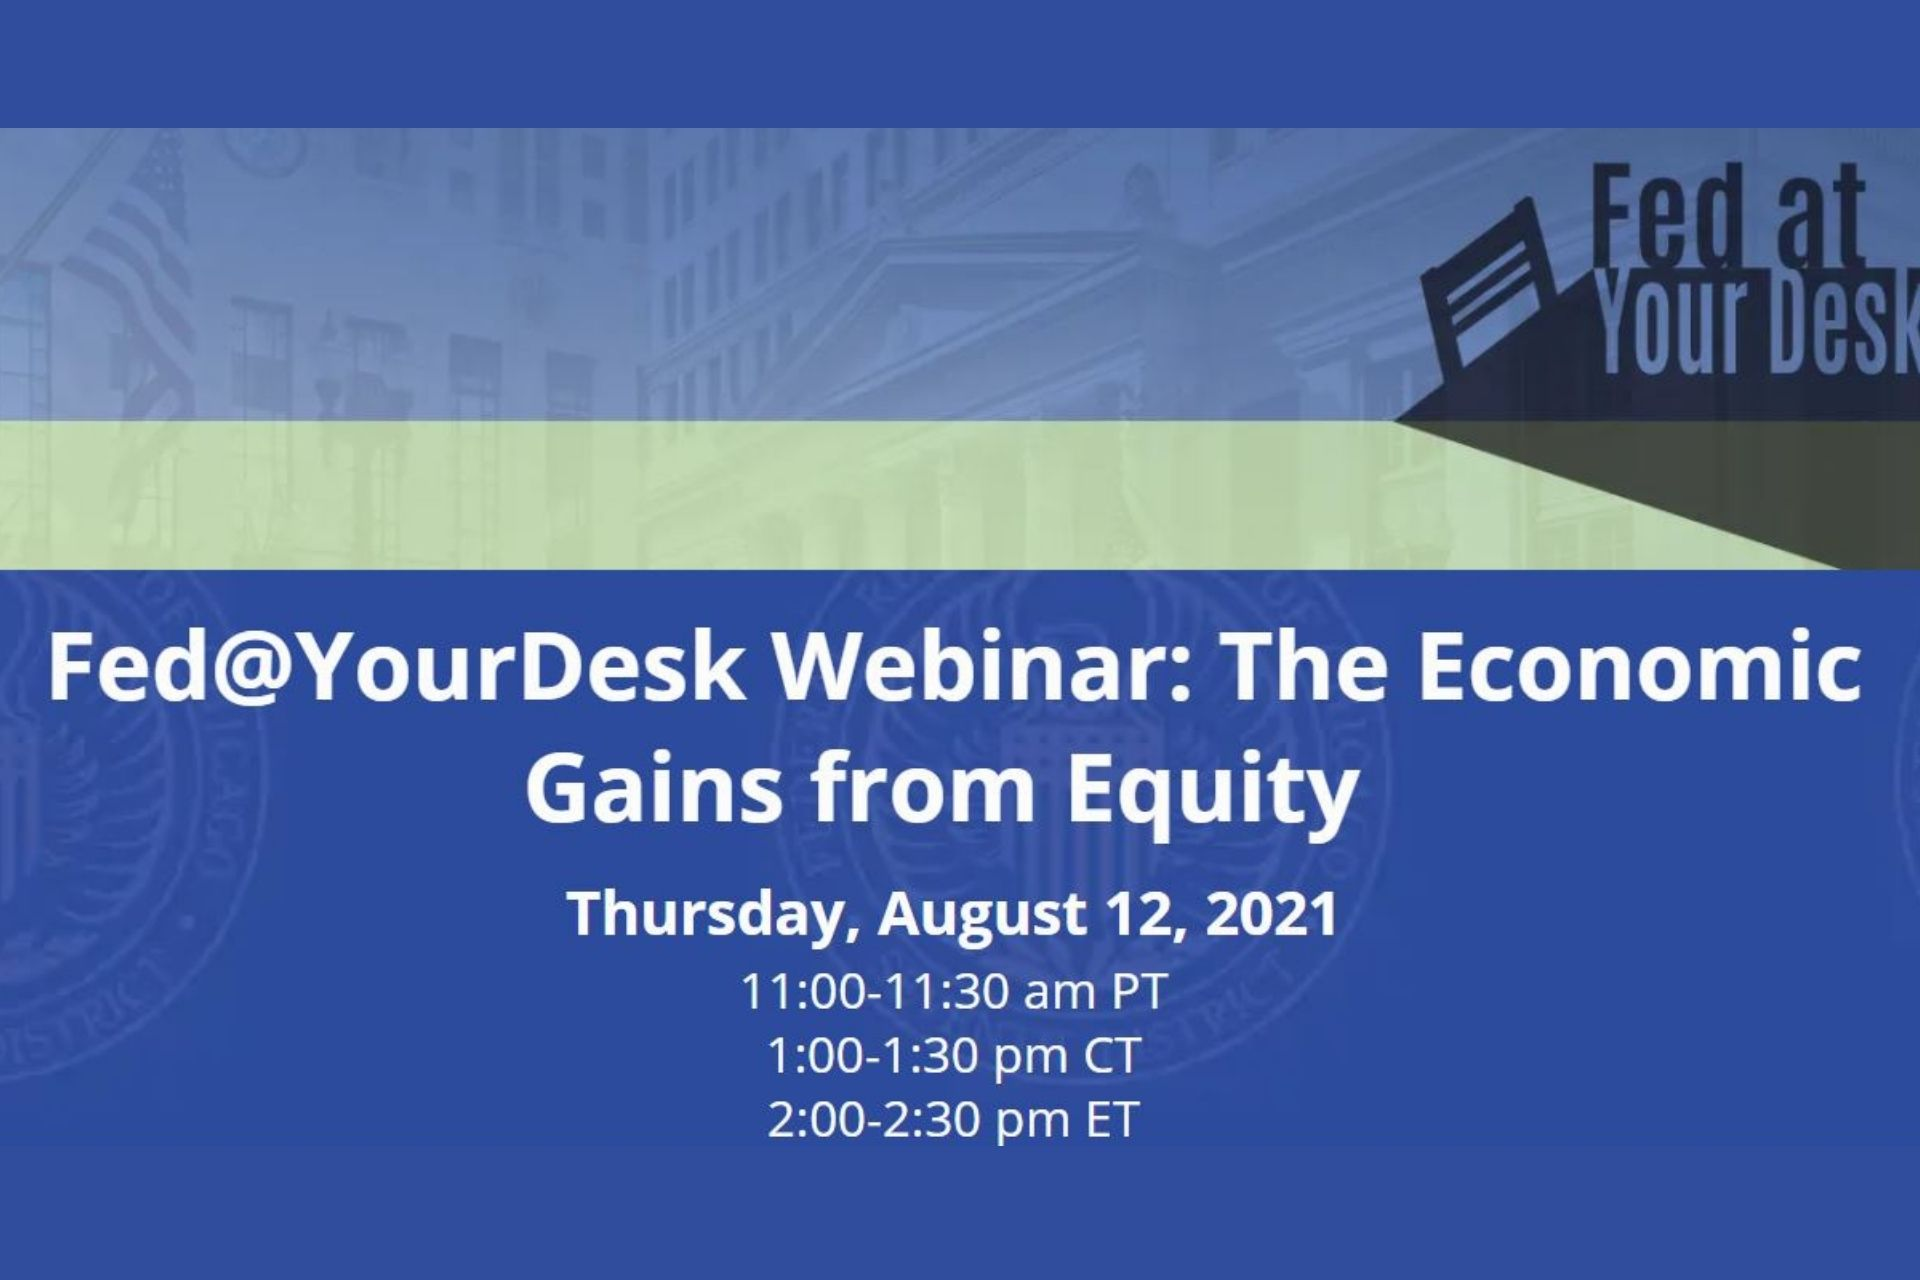 Fed At Your Desk Economic Gains from Equity